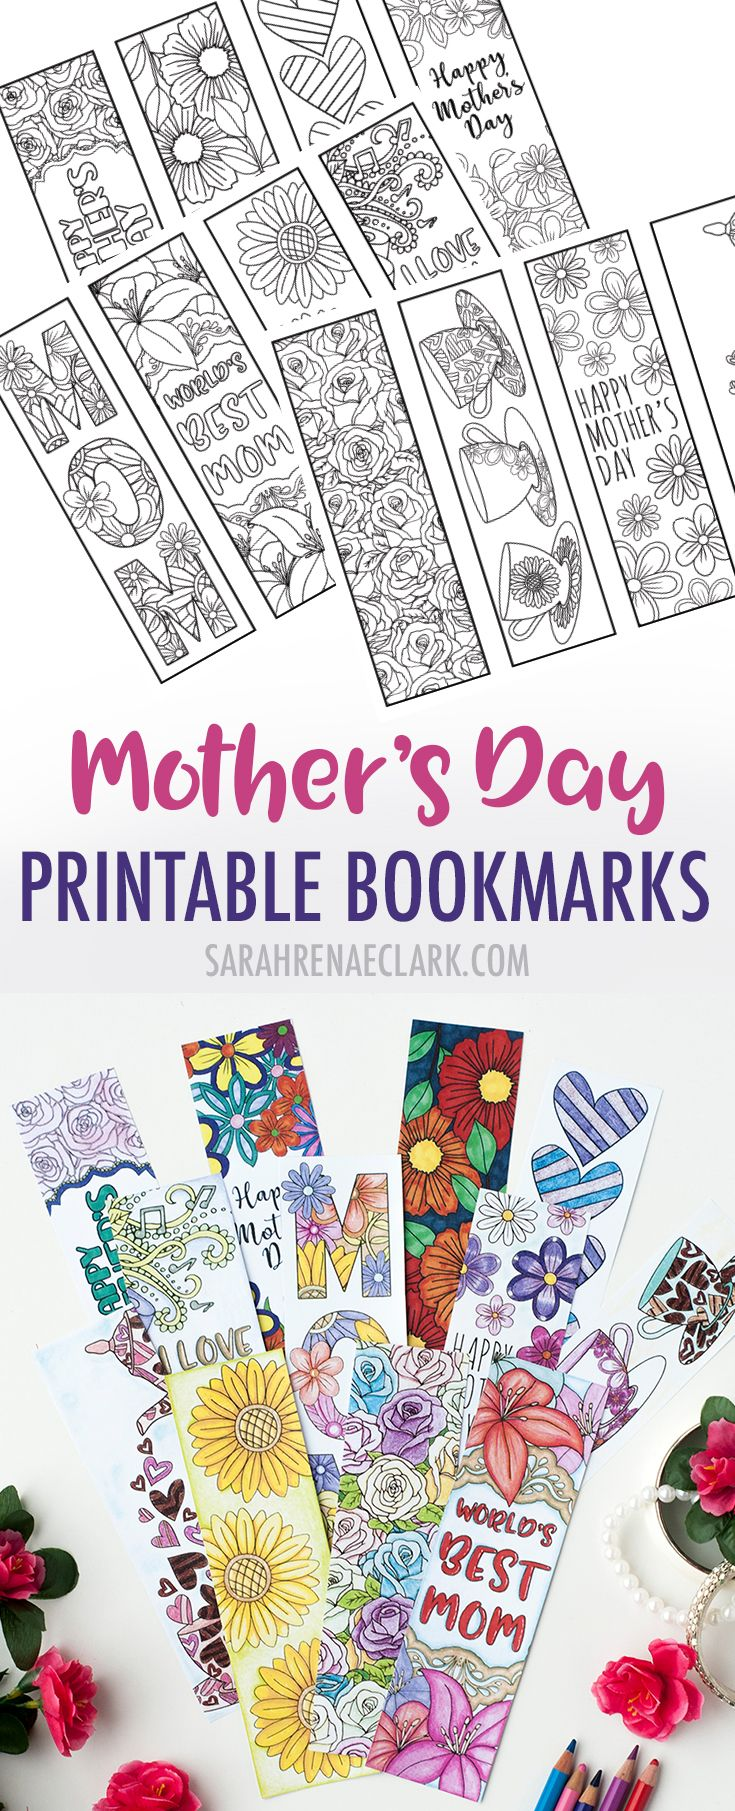 Color And Make These Mother S Day Bookmarks For A Special Mom